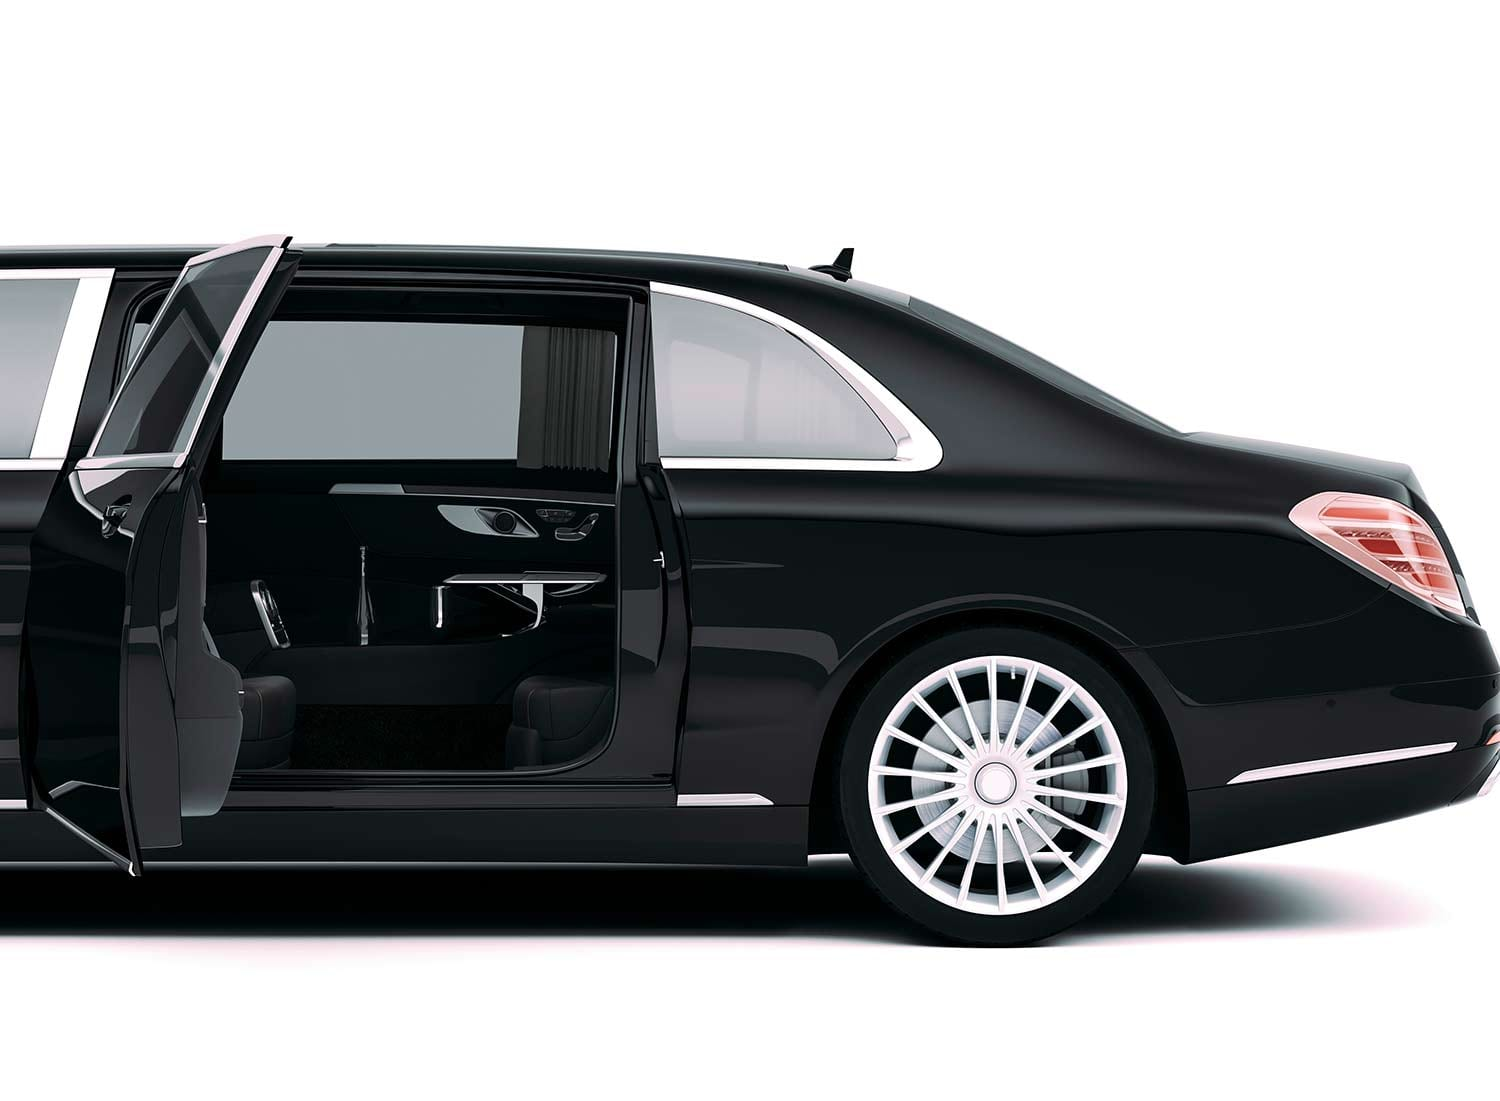 Clearwater Limo - Black Limousine